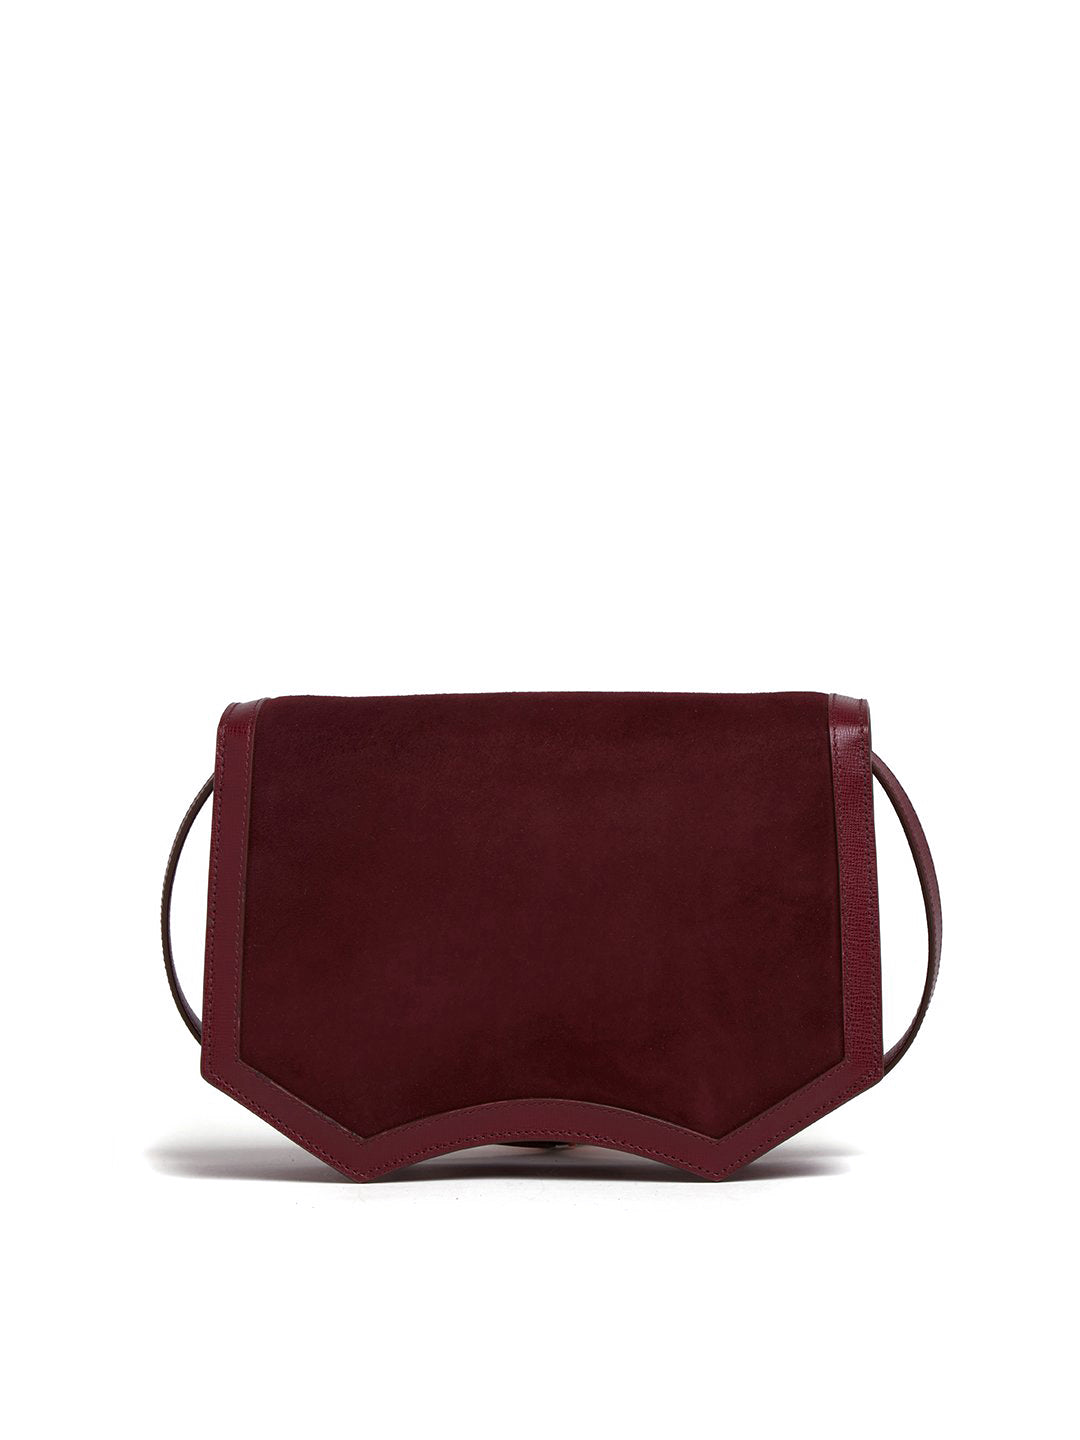 Madeline Suede & Leather Crossbody Bag